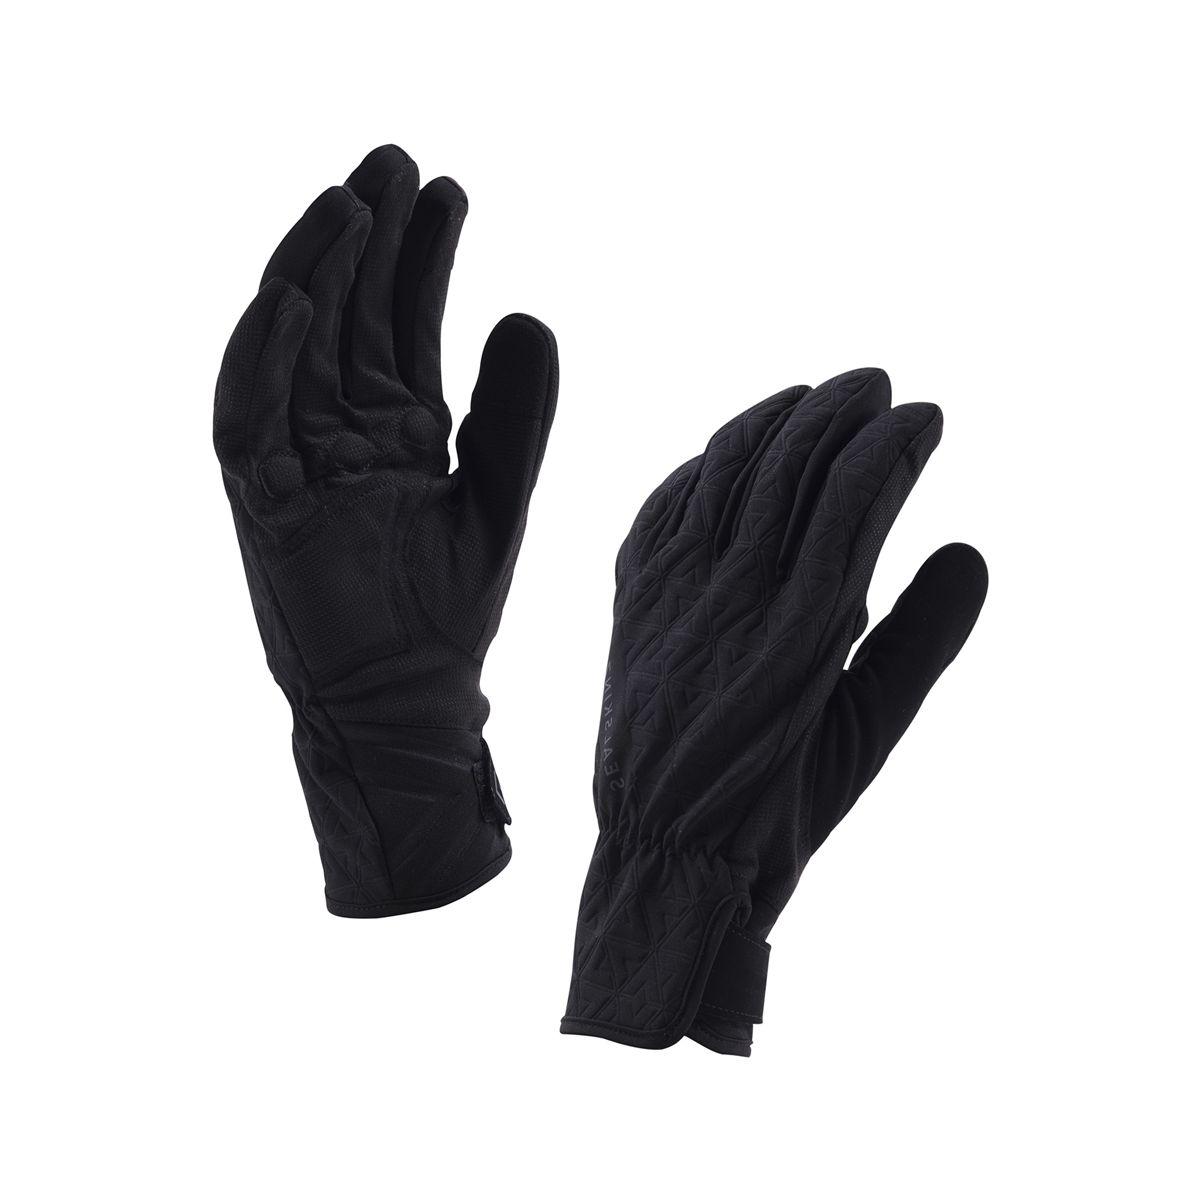 ALL WEATHER CYCLE women's gloves